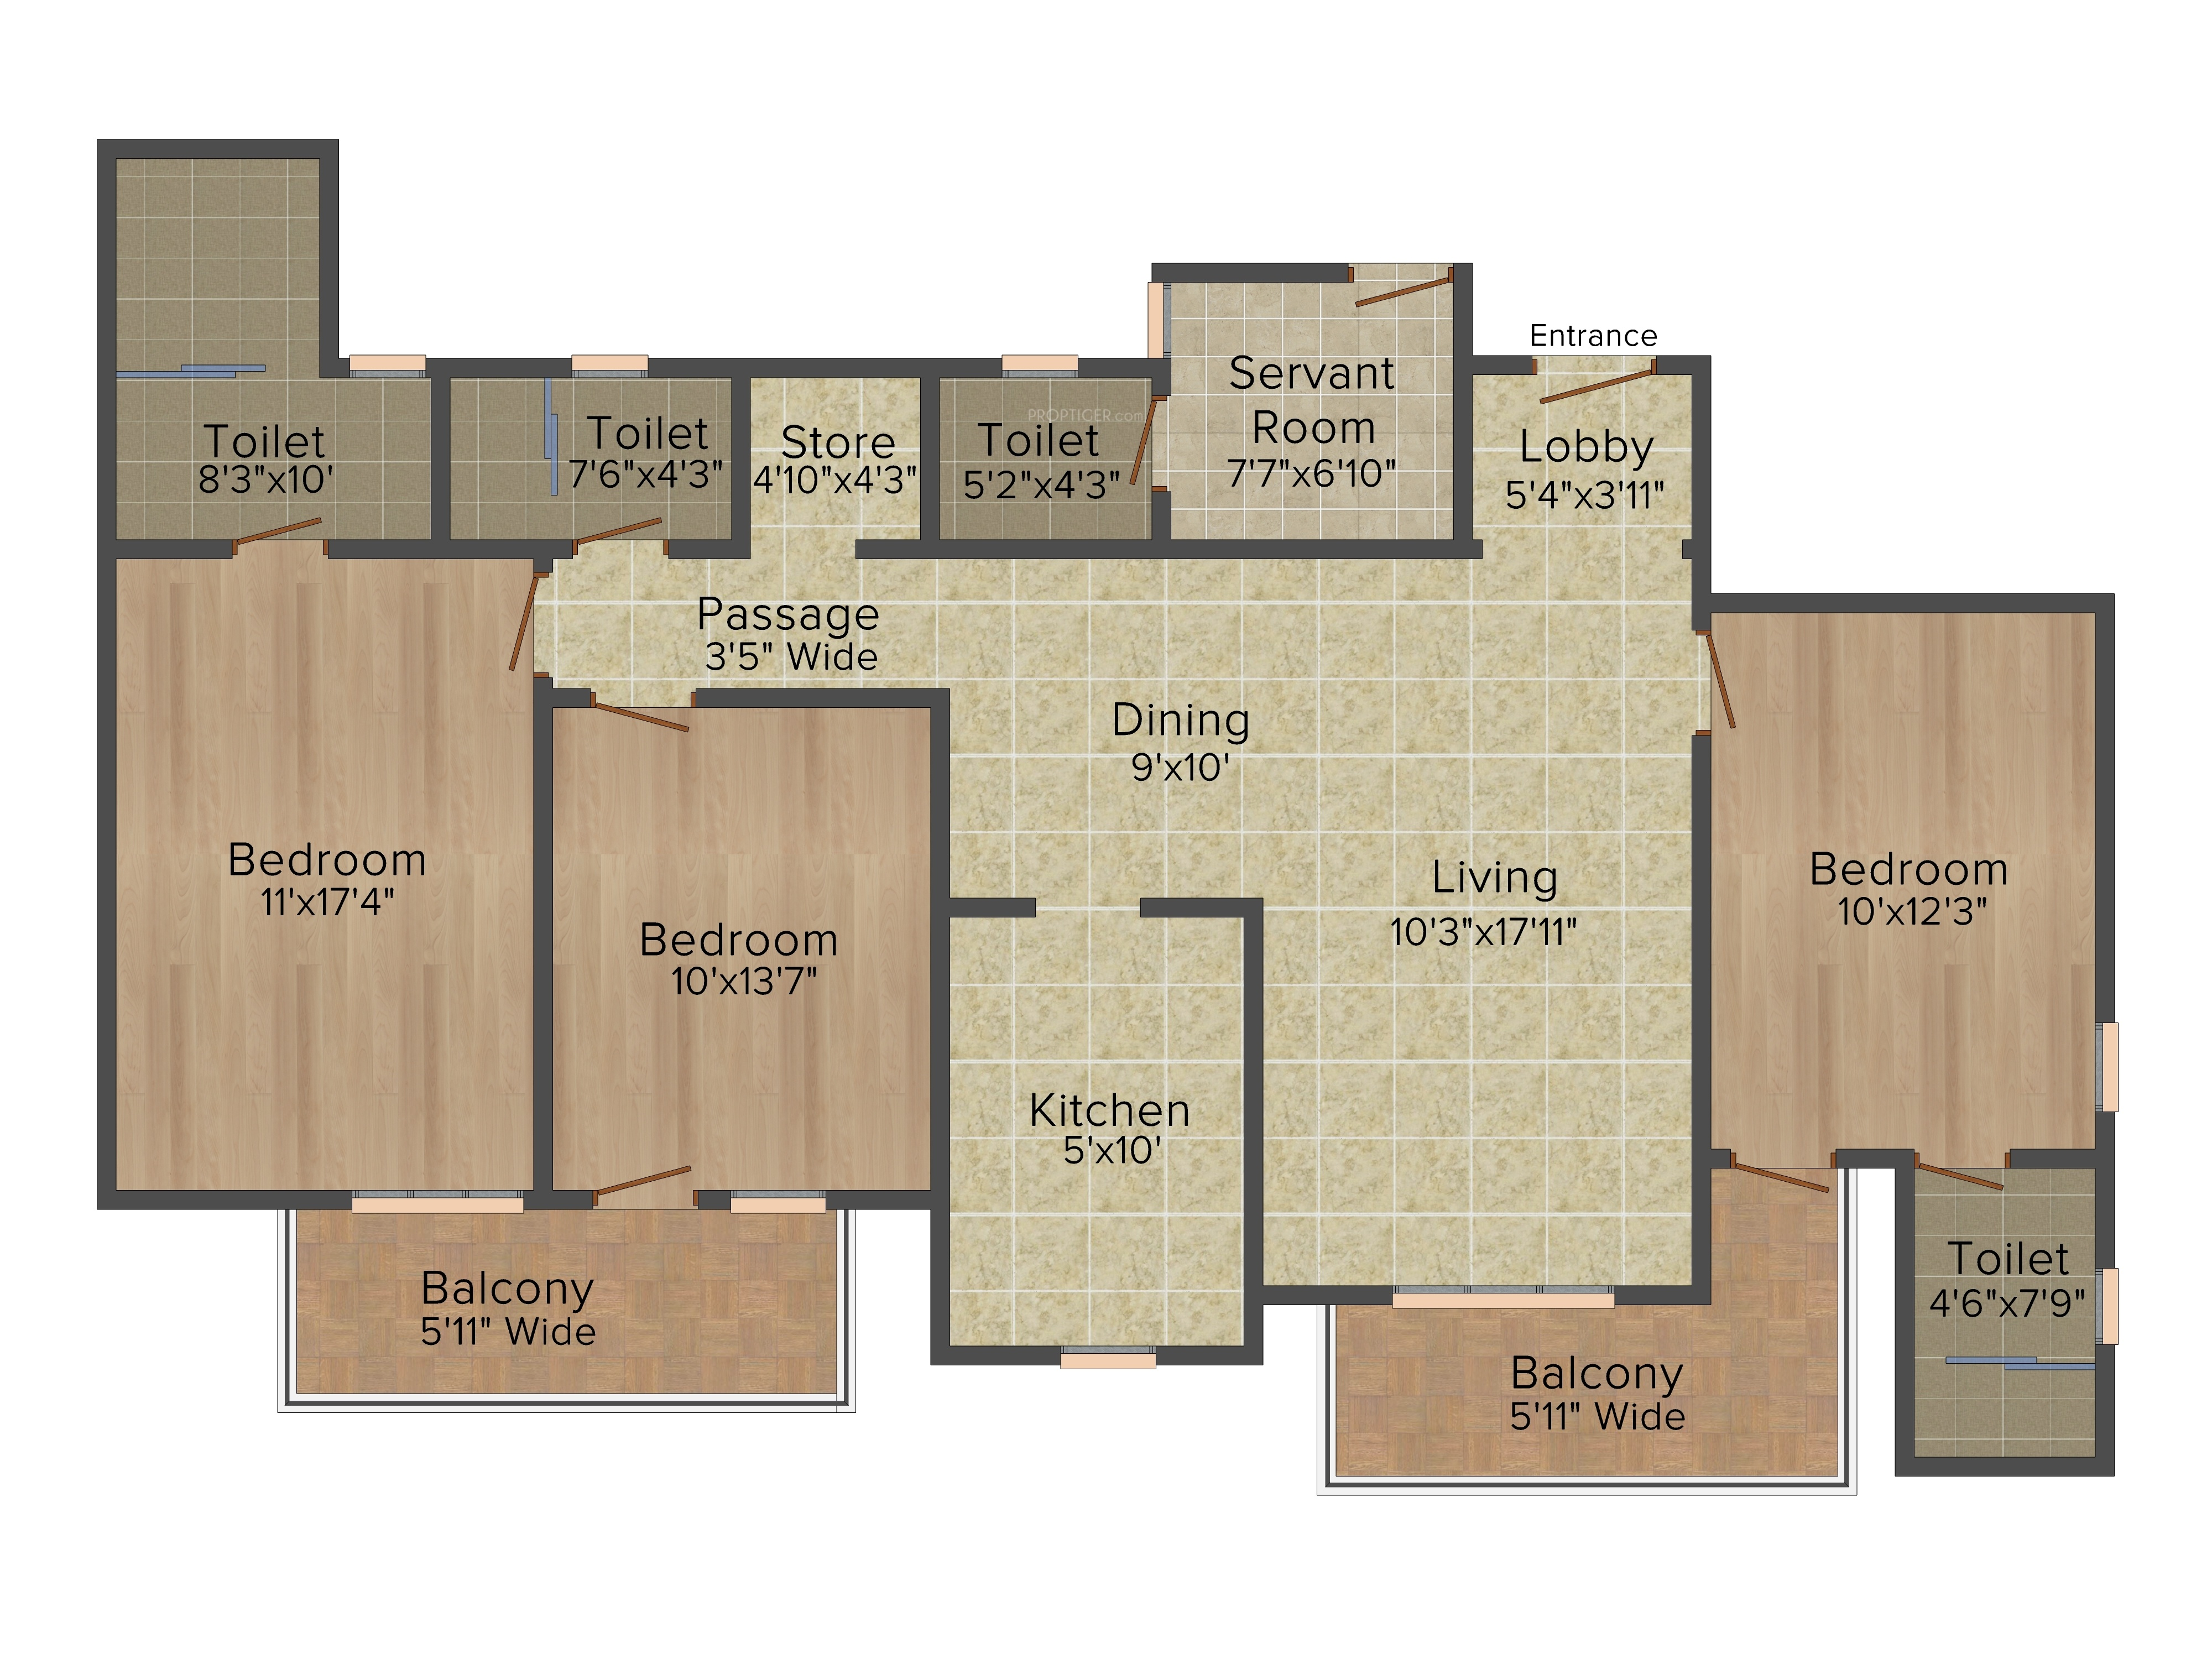 DLF Express Greens in Sector 1 Manesar, Gurgaon - Price, Location